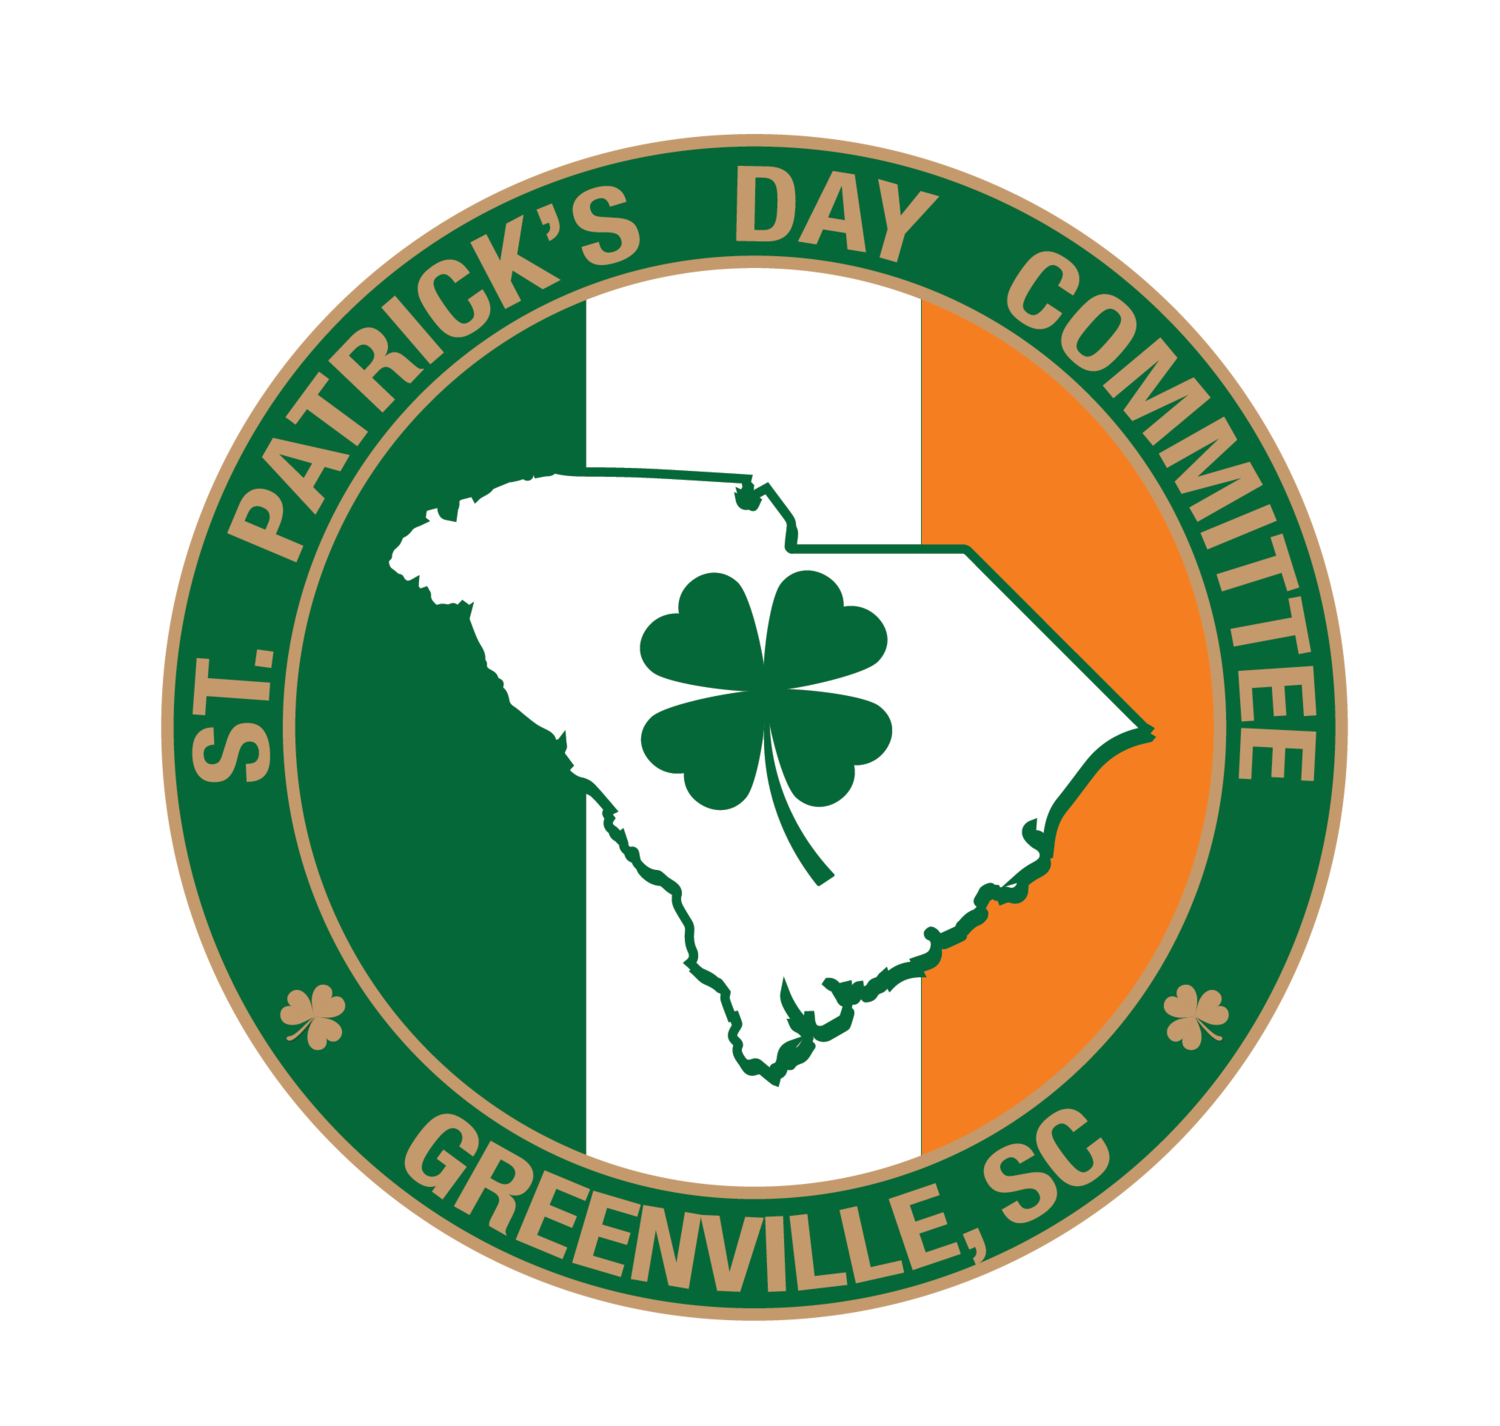 Greenville St. Patrick's Day Committee